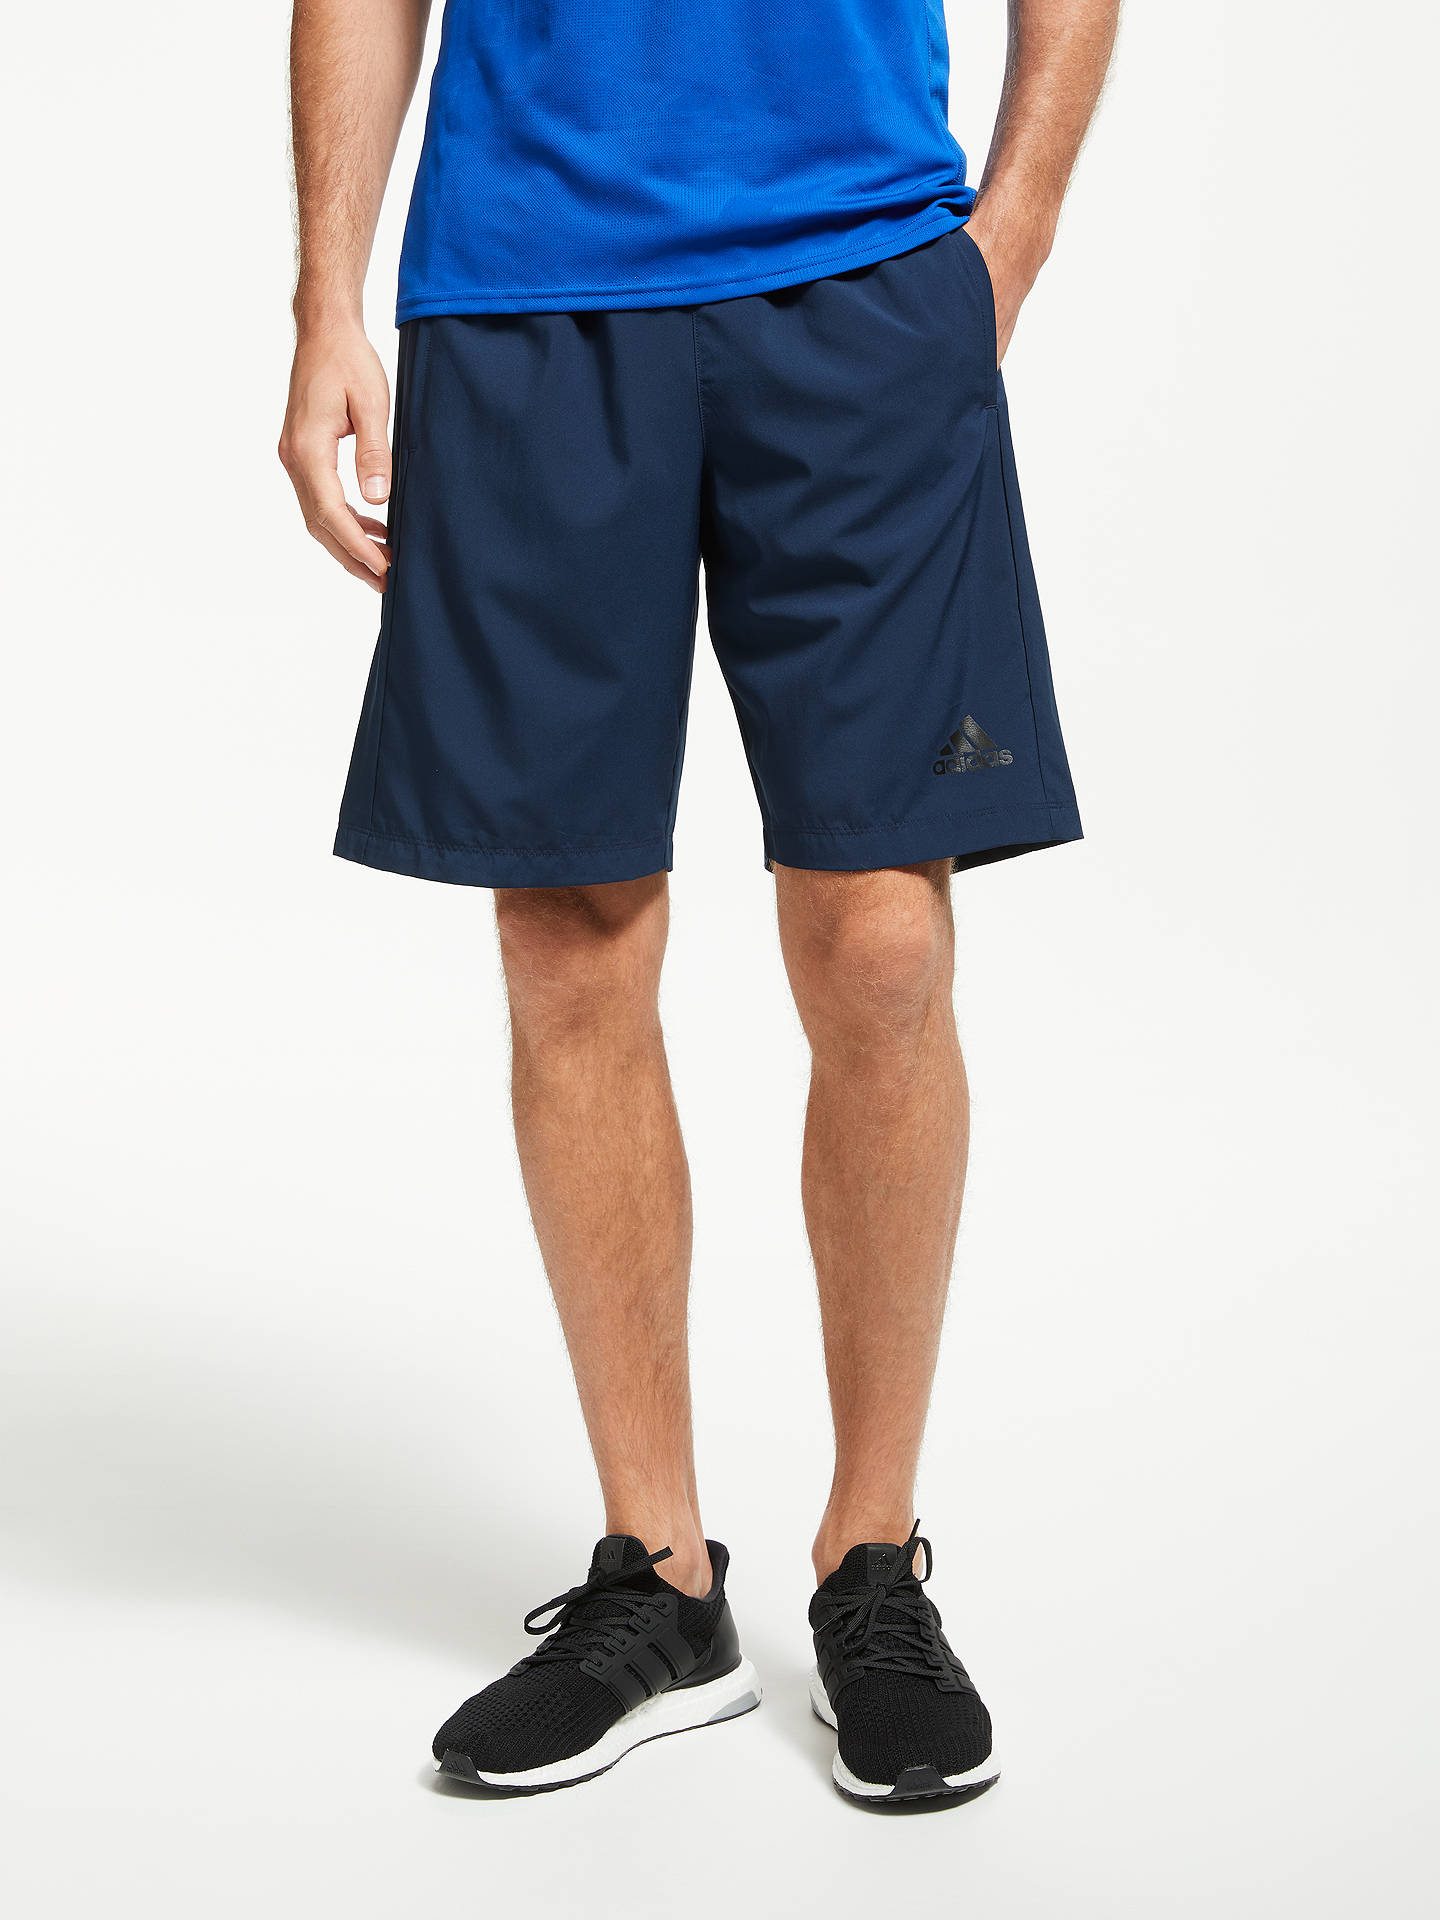 adidas D2M Woven Training Shorts, Navy at John Lewis & Partners